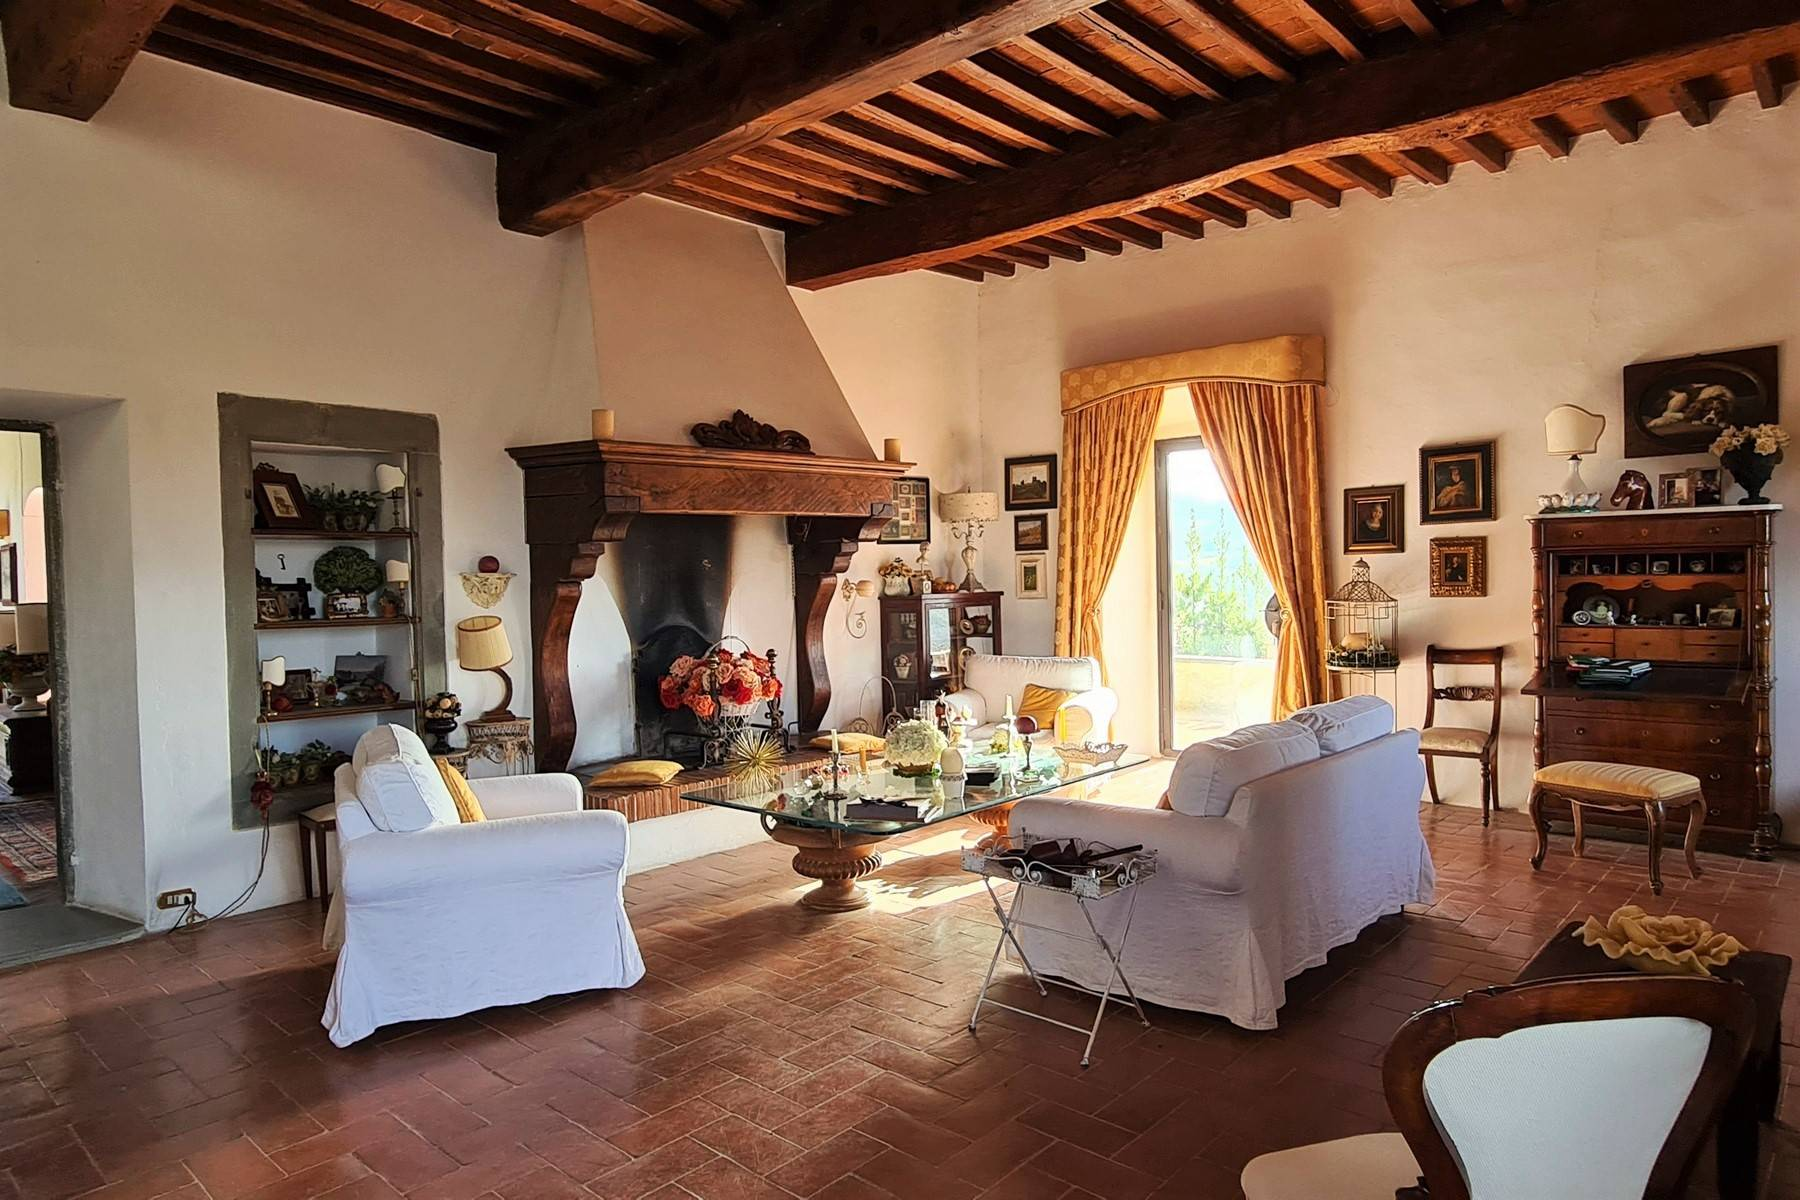 Enchanting historical villa in the heart of Chianti - 14